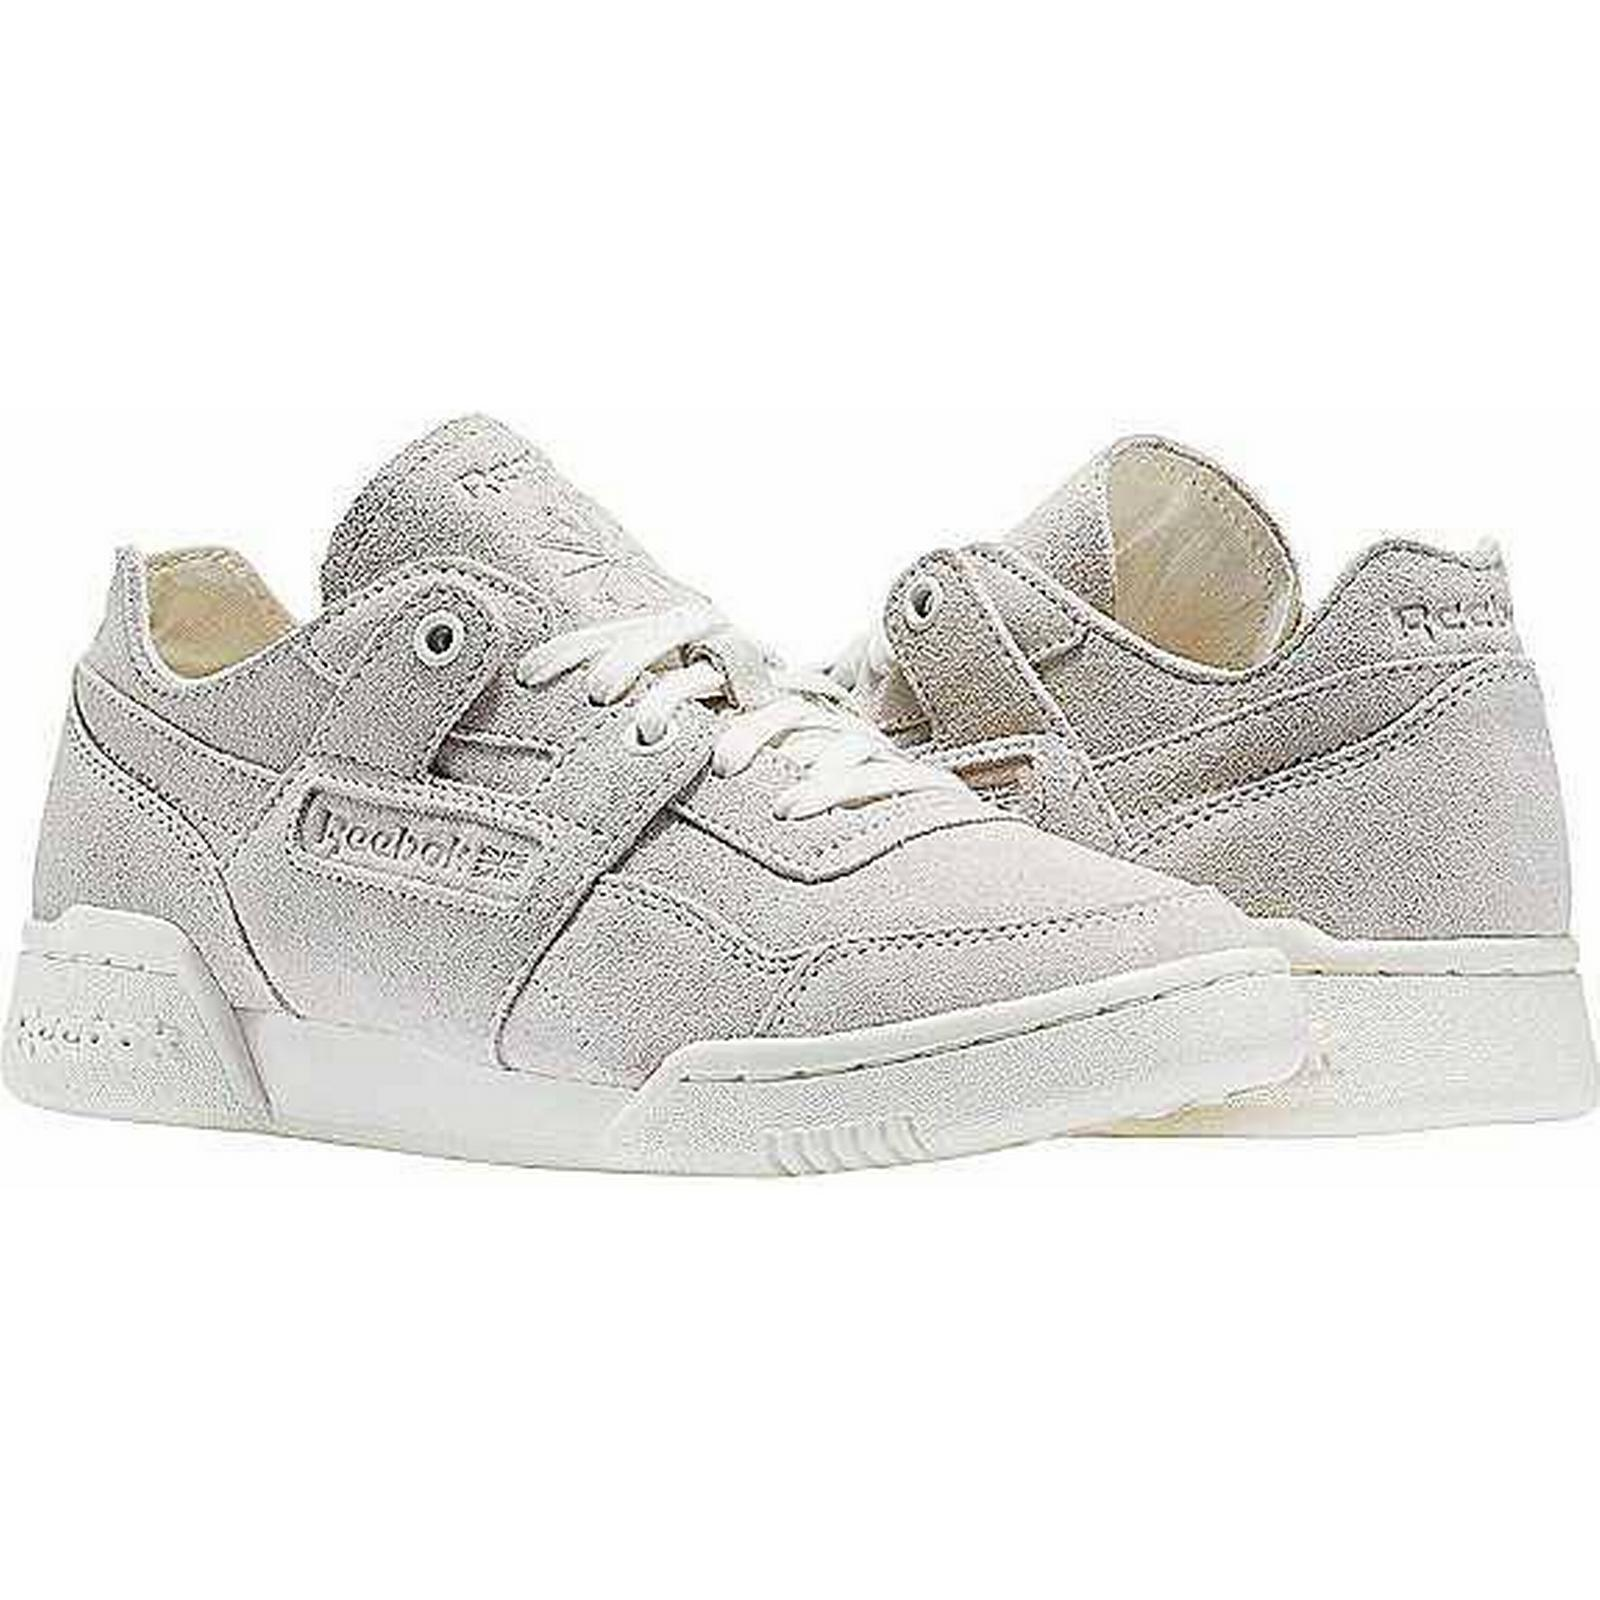 Reebok Classic 'Workout Lo Reebok/Man/Woman/work Plus FBT' Trainers by Reebok/Man/Woman/work Lo fine bdcc24